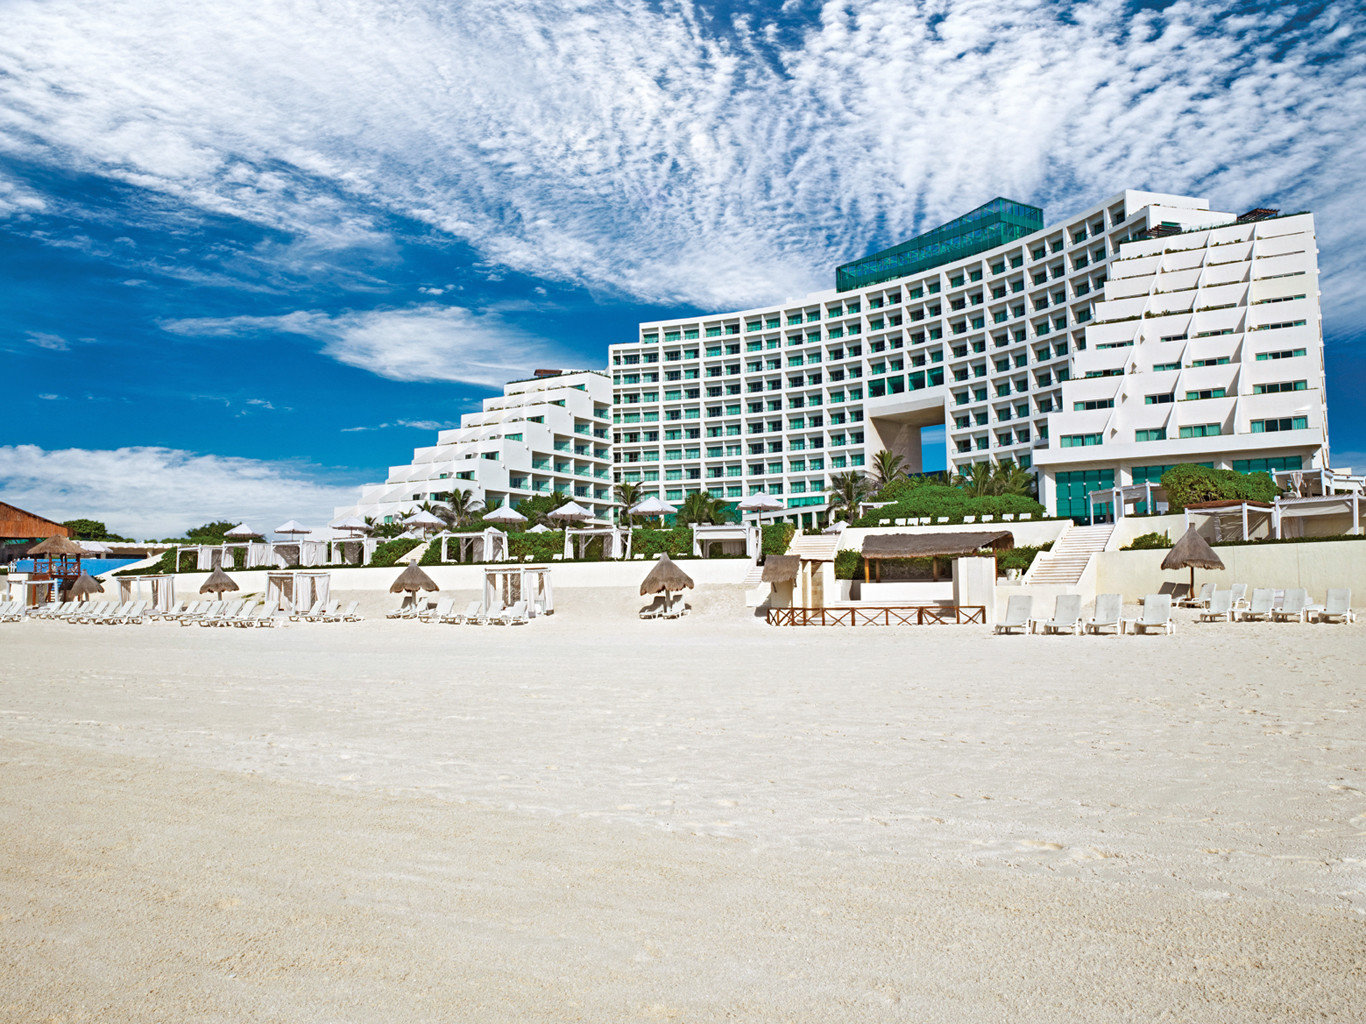 Adult-only All-Inclusive Resorts Beach Beachfront Cancun Exterior Hotels Mexico Ocean Resort outdoor body of water Nature Sea vacation walkway shore Coast boardwalk people sand sandy day several